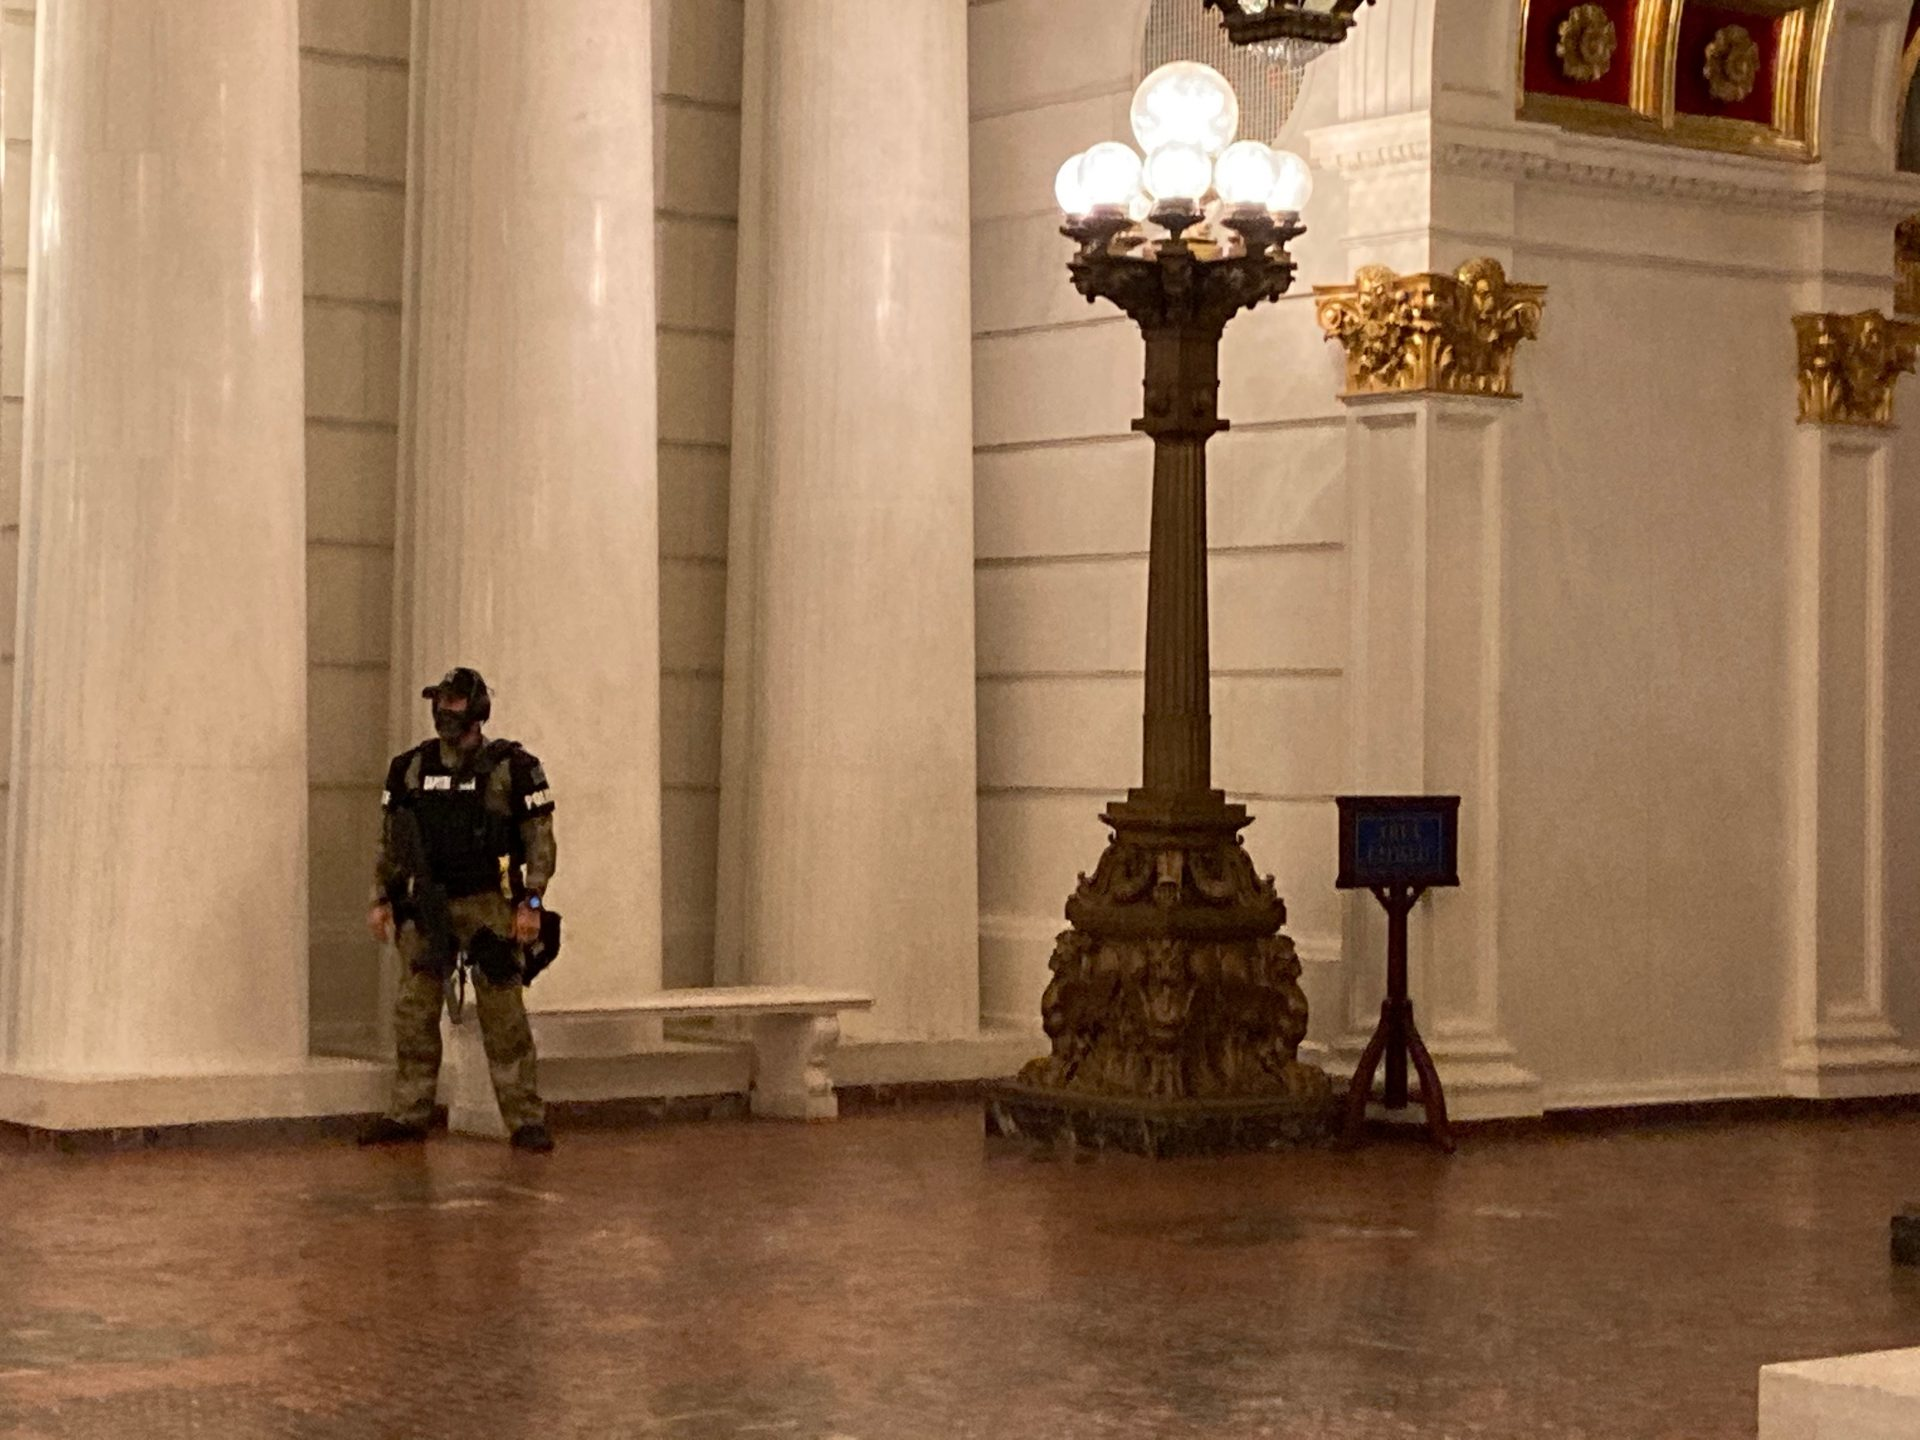 An armed Pennsylvania Capitol Police officer guards the building on Jan. 12, 2021.